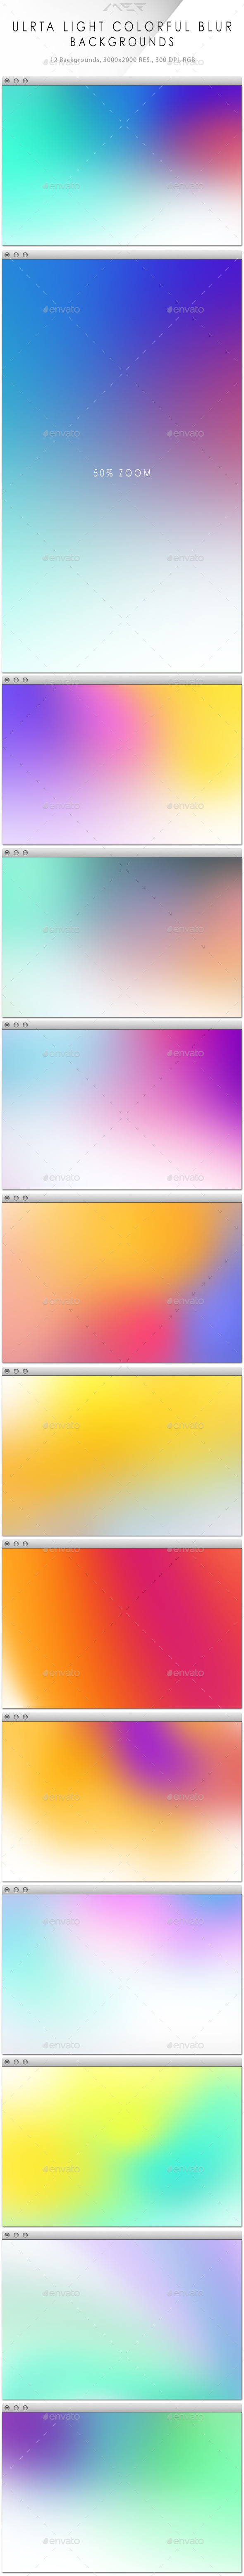 Ultra Light Colorful Blur Backgrounds - Abstract Backgrounds